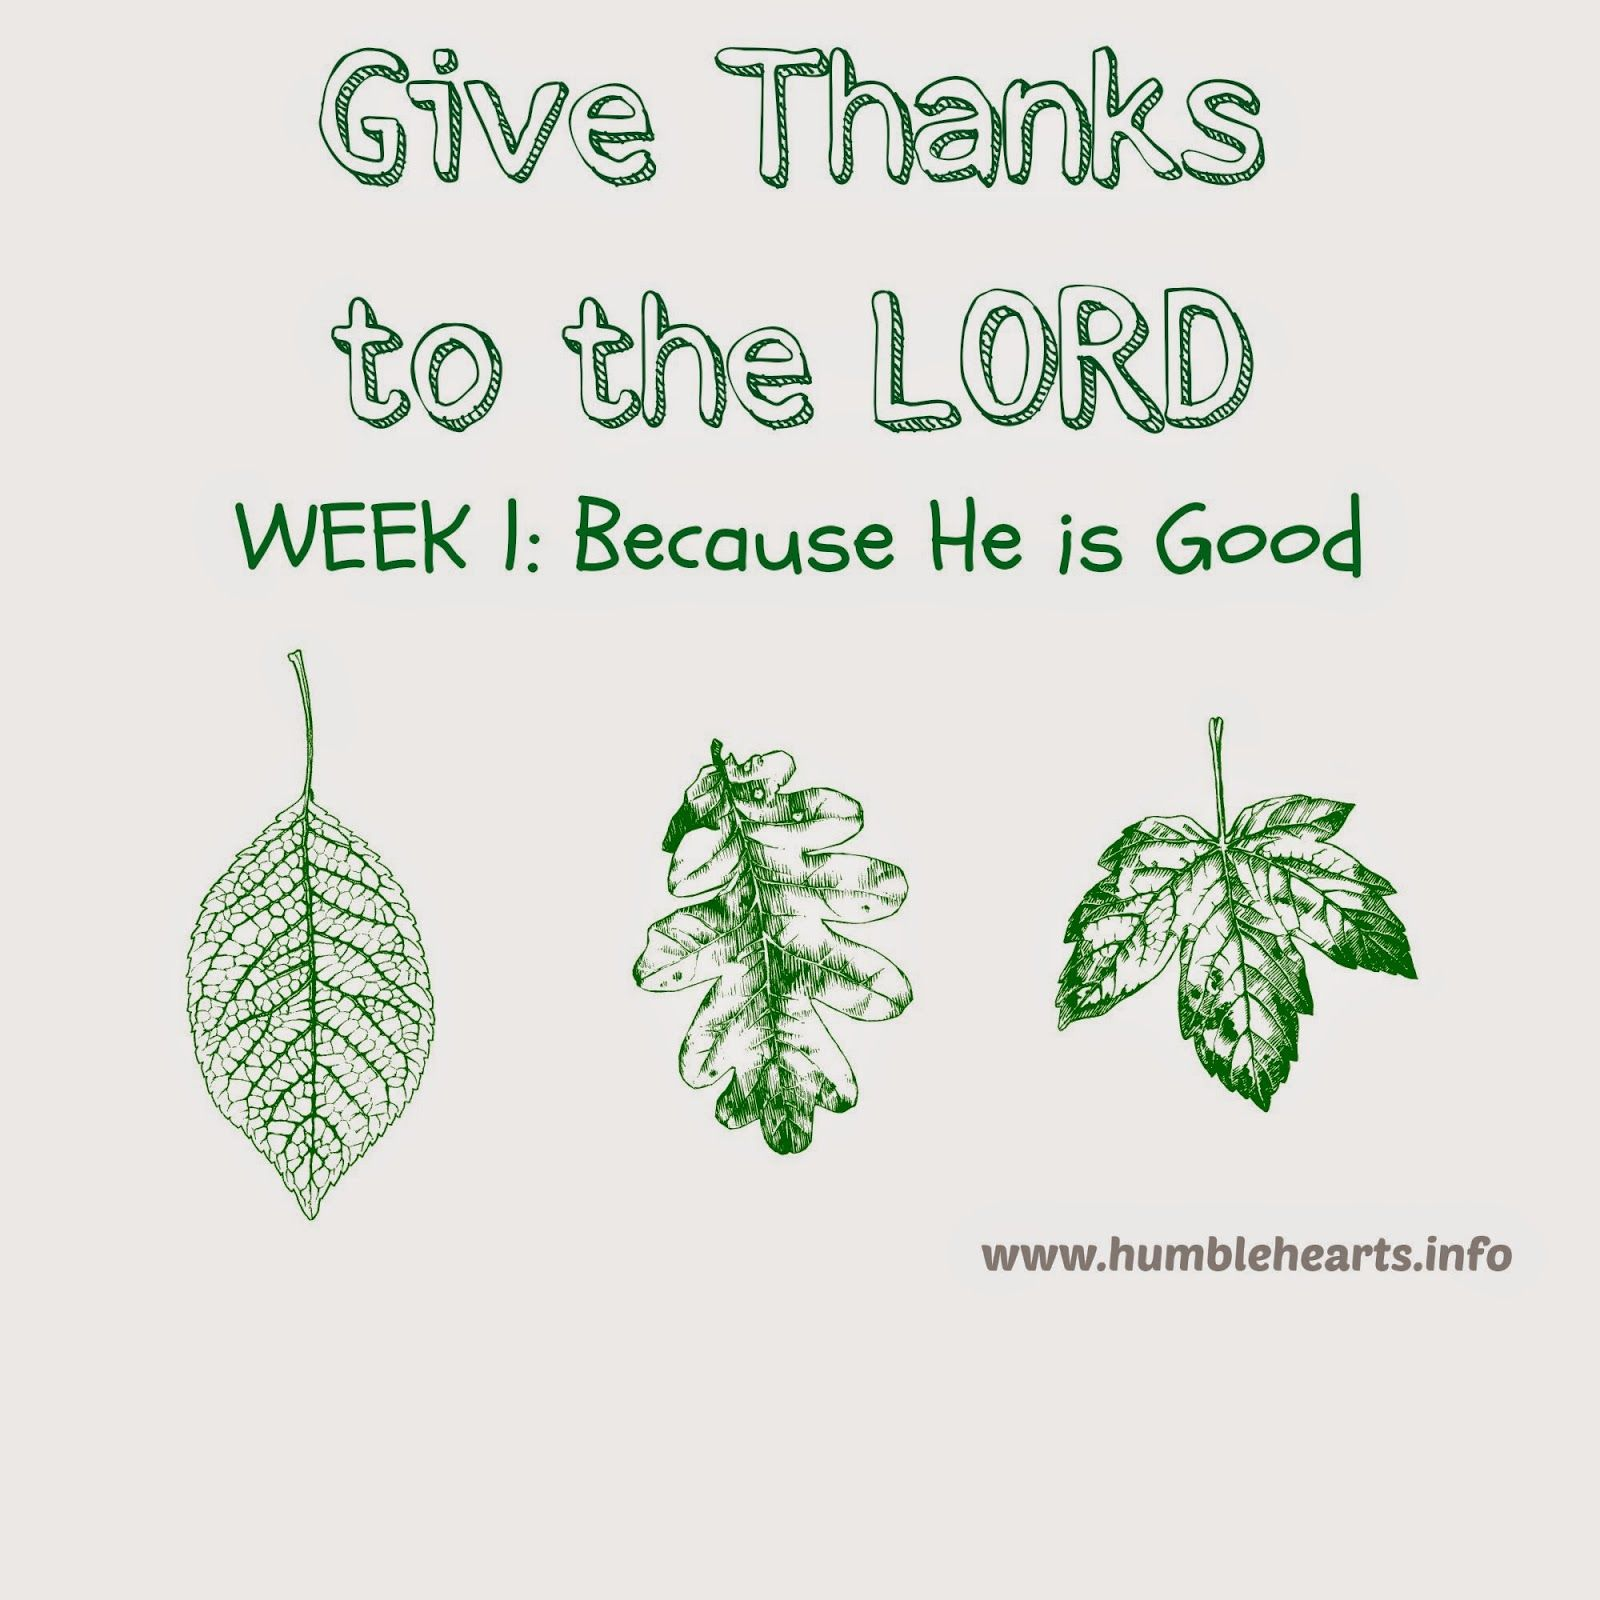 Humble Hearts: Give Thanks to the LORD Week 1: Because He is Good